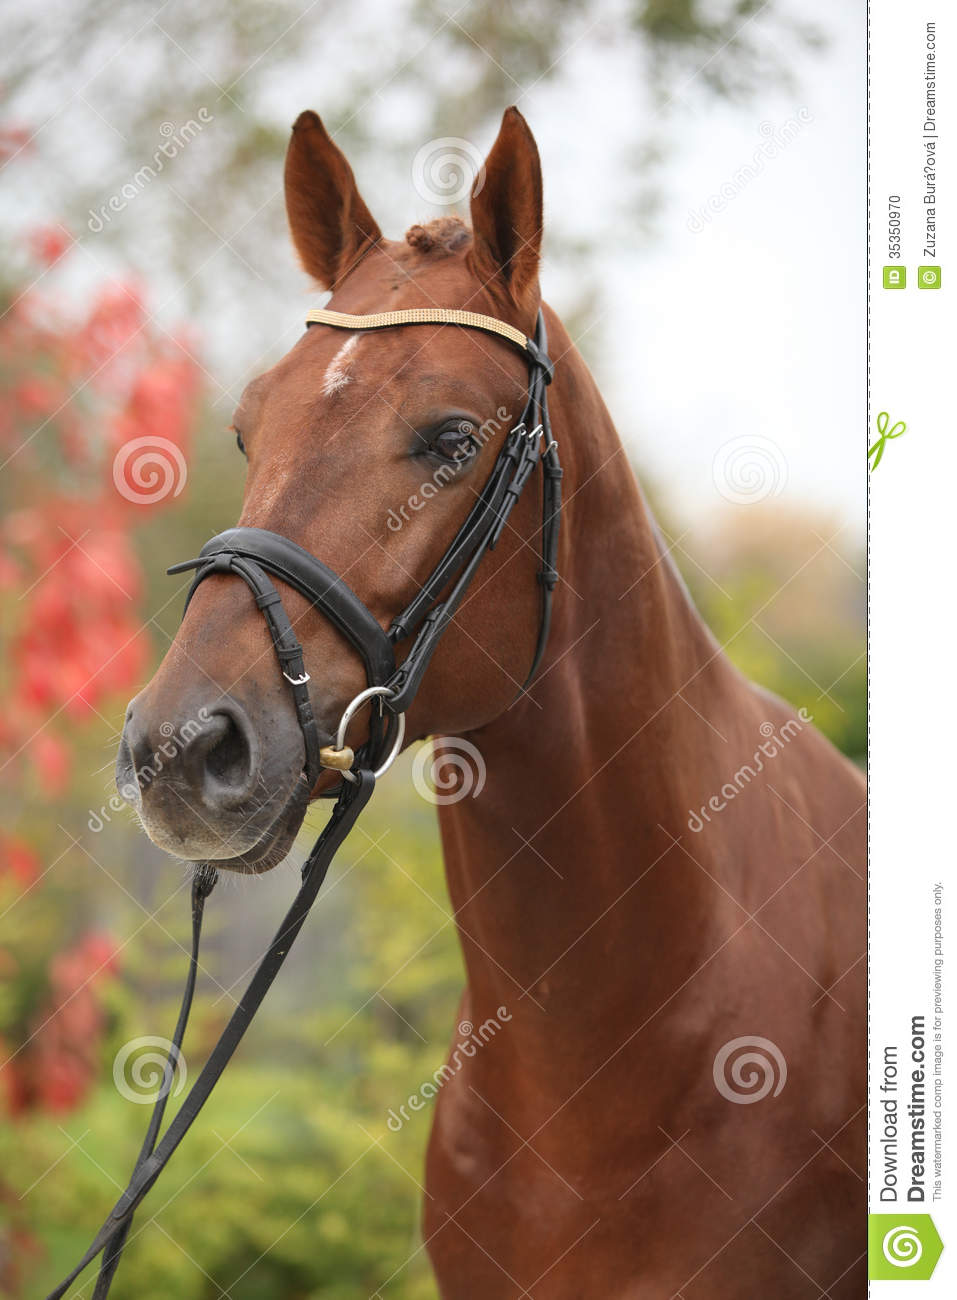 Nice Big Horse With Perfect Hair Style Stock Photo Image